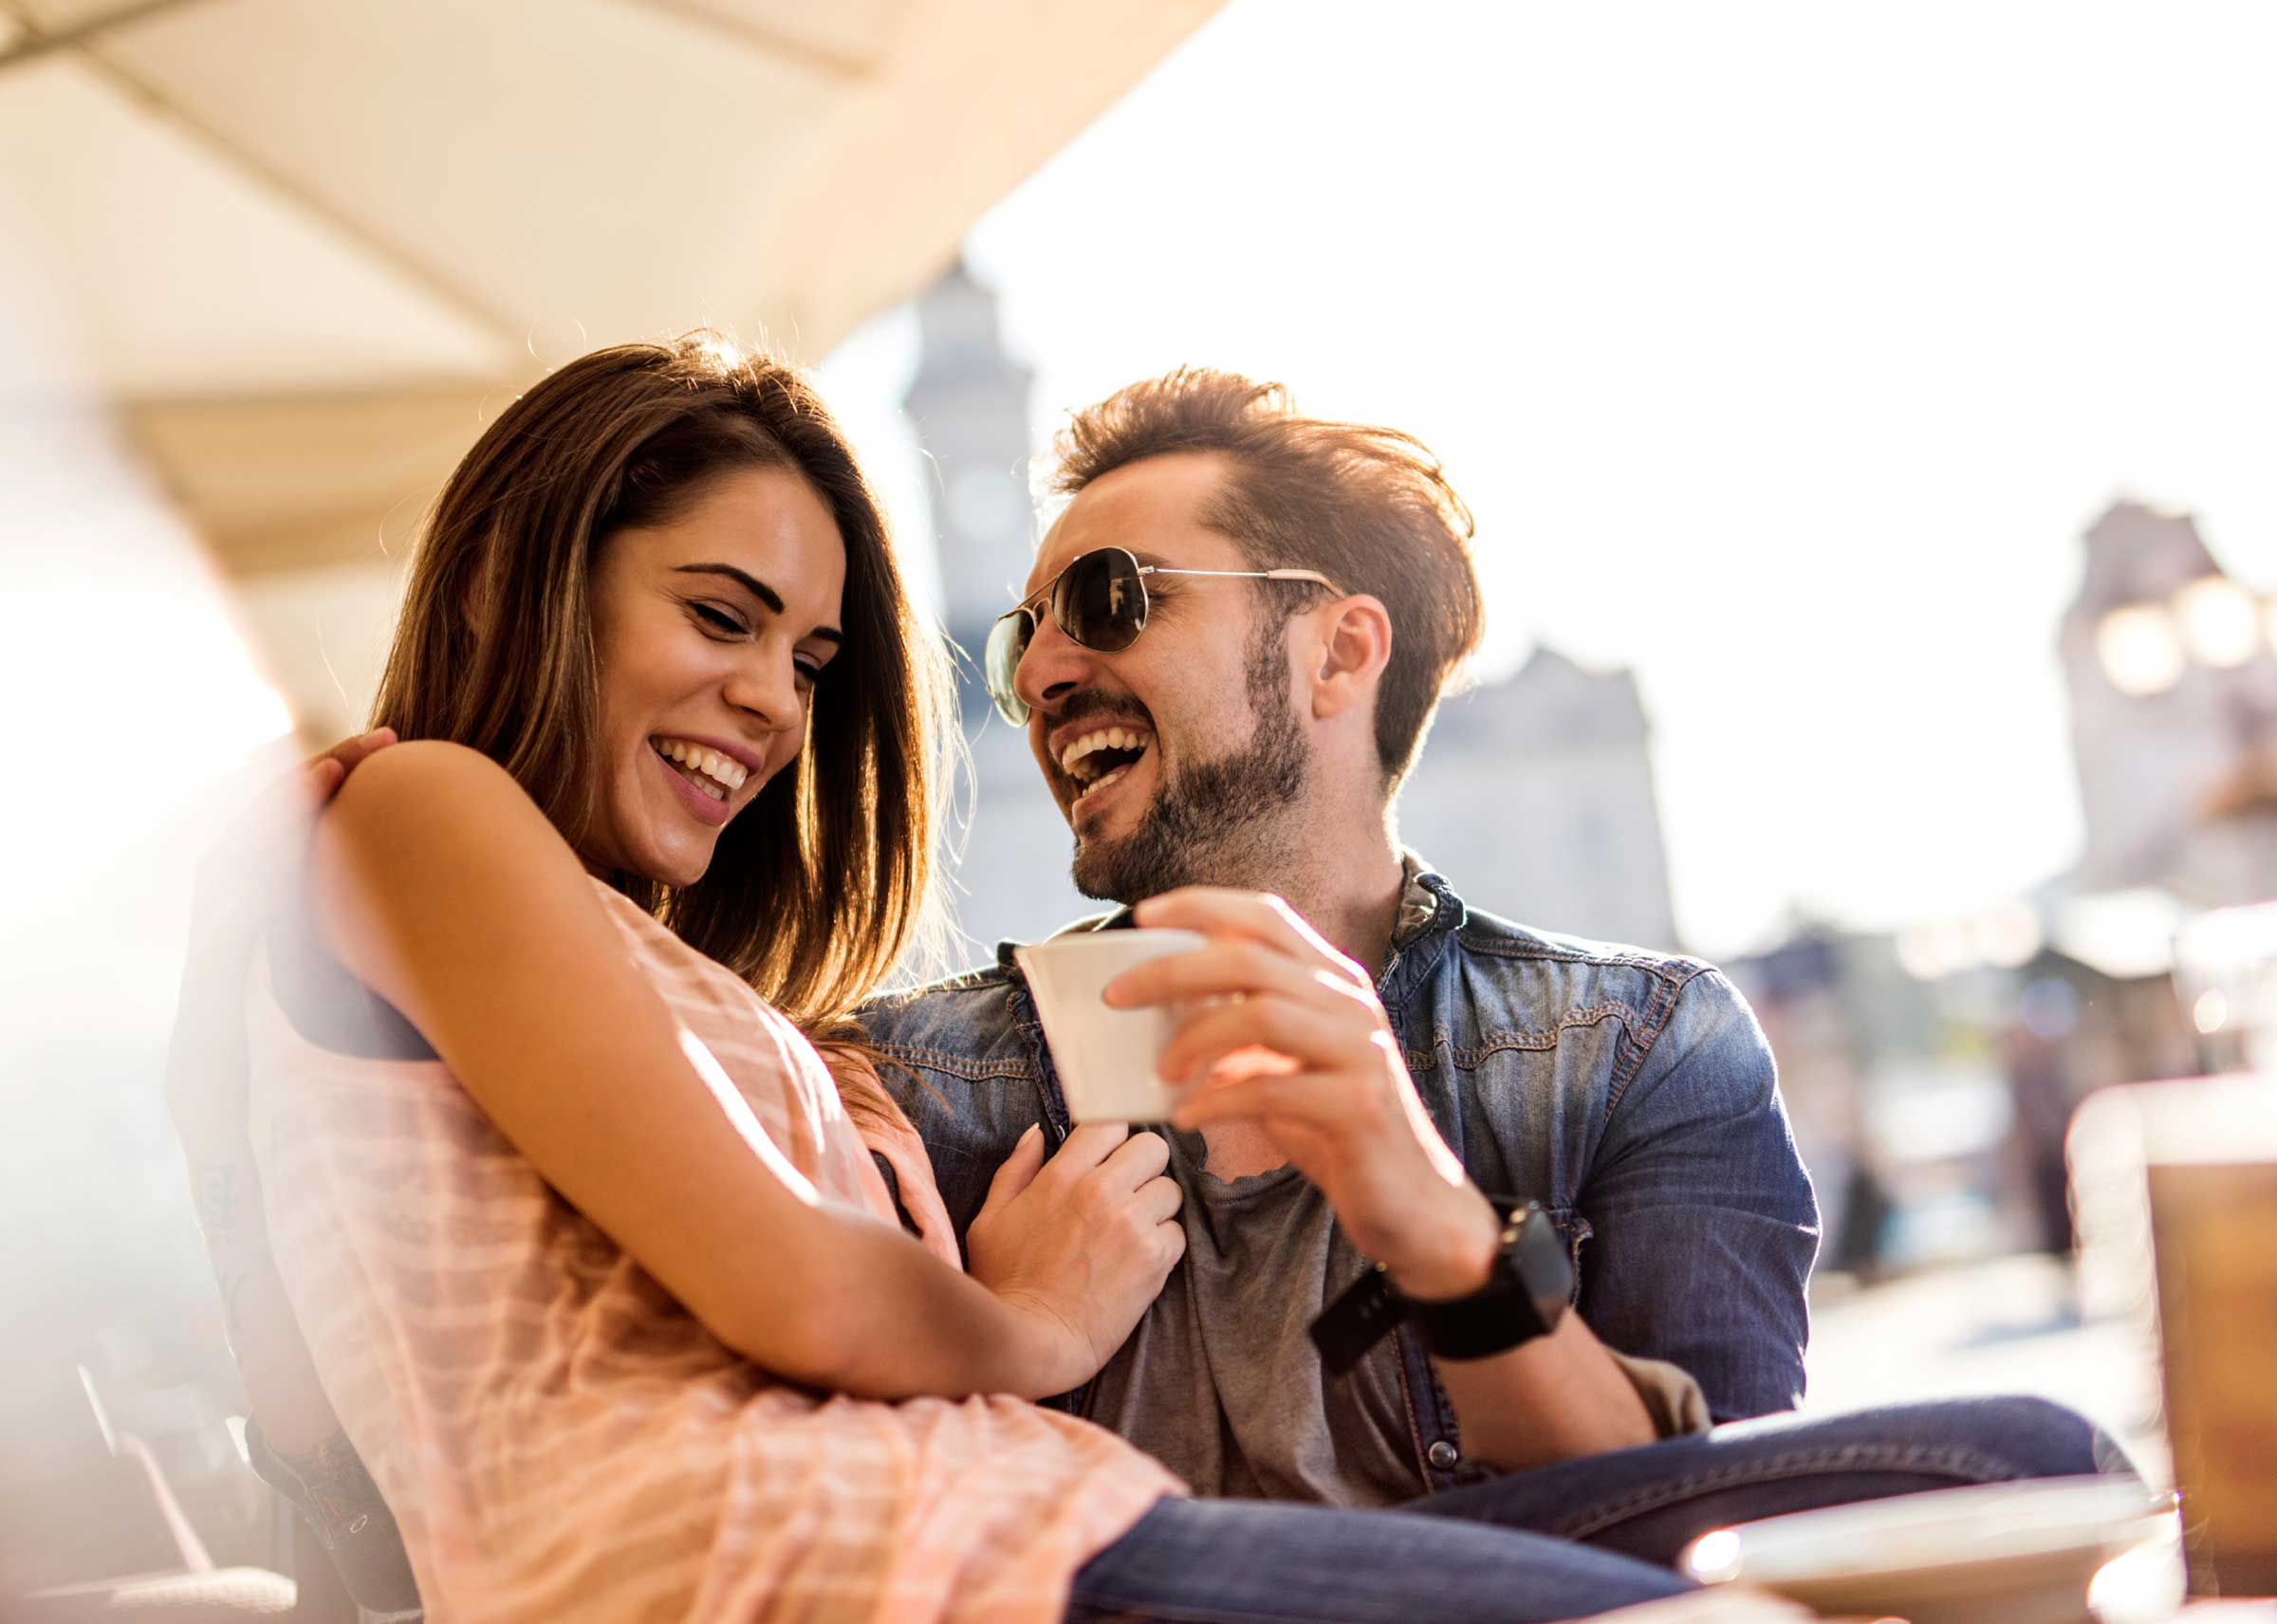 04-weird-facts-laughter-couple-laughing